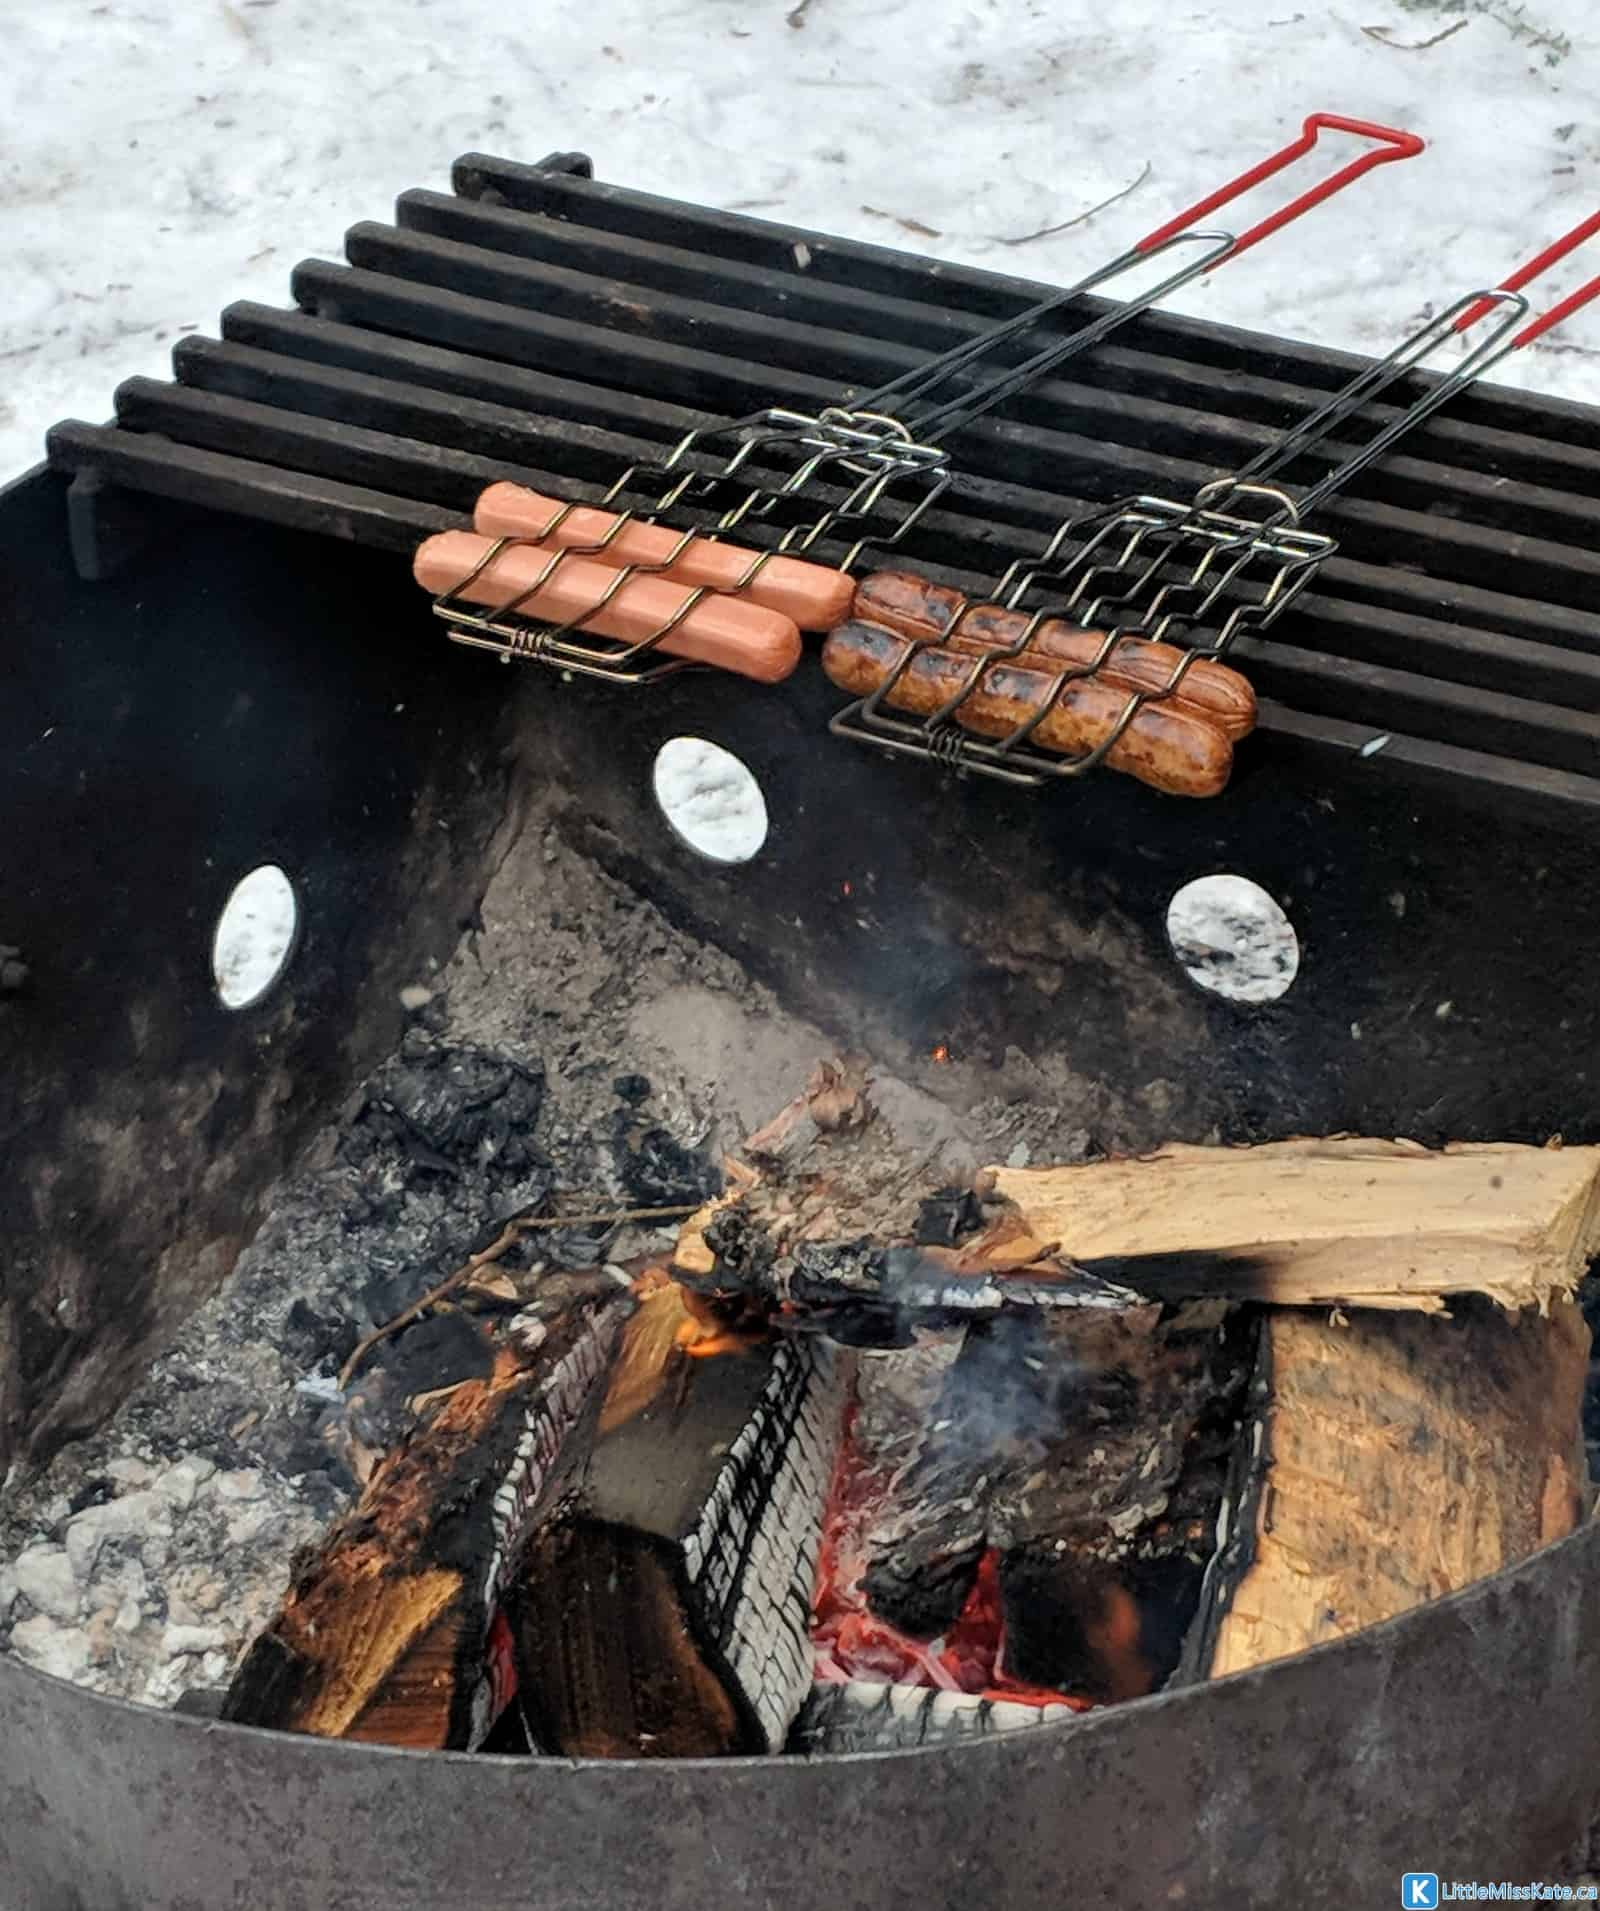 How do you cook when winter camping in a yurt - winter camping meal ideas fire pit